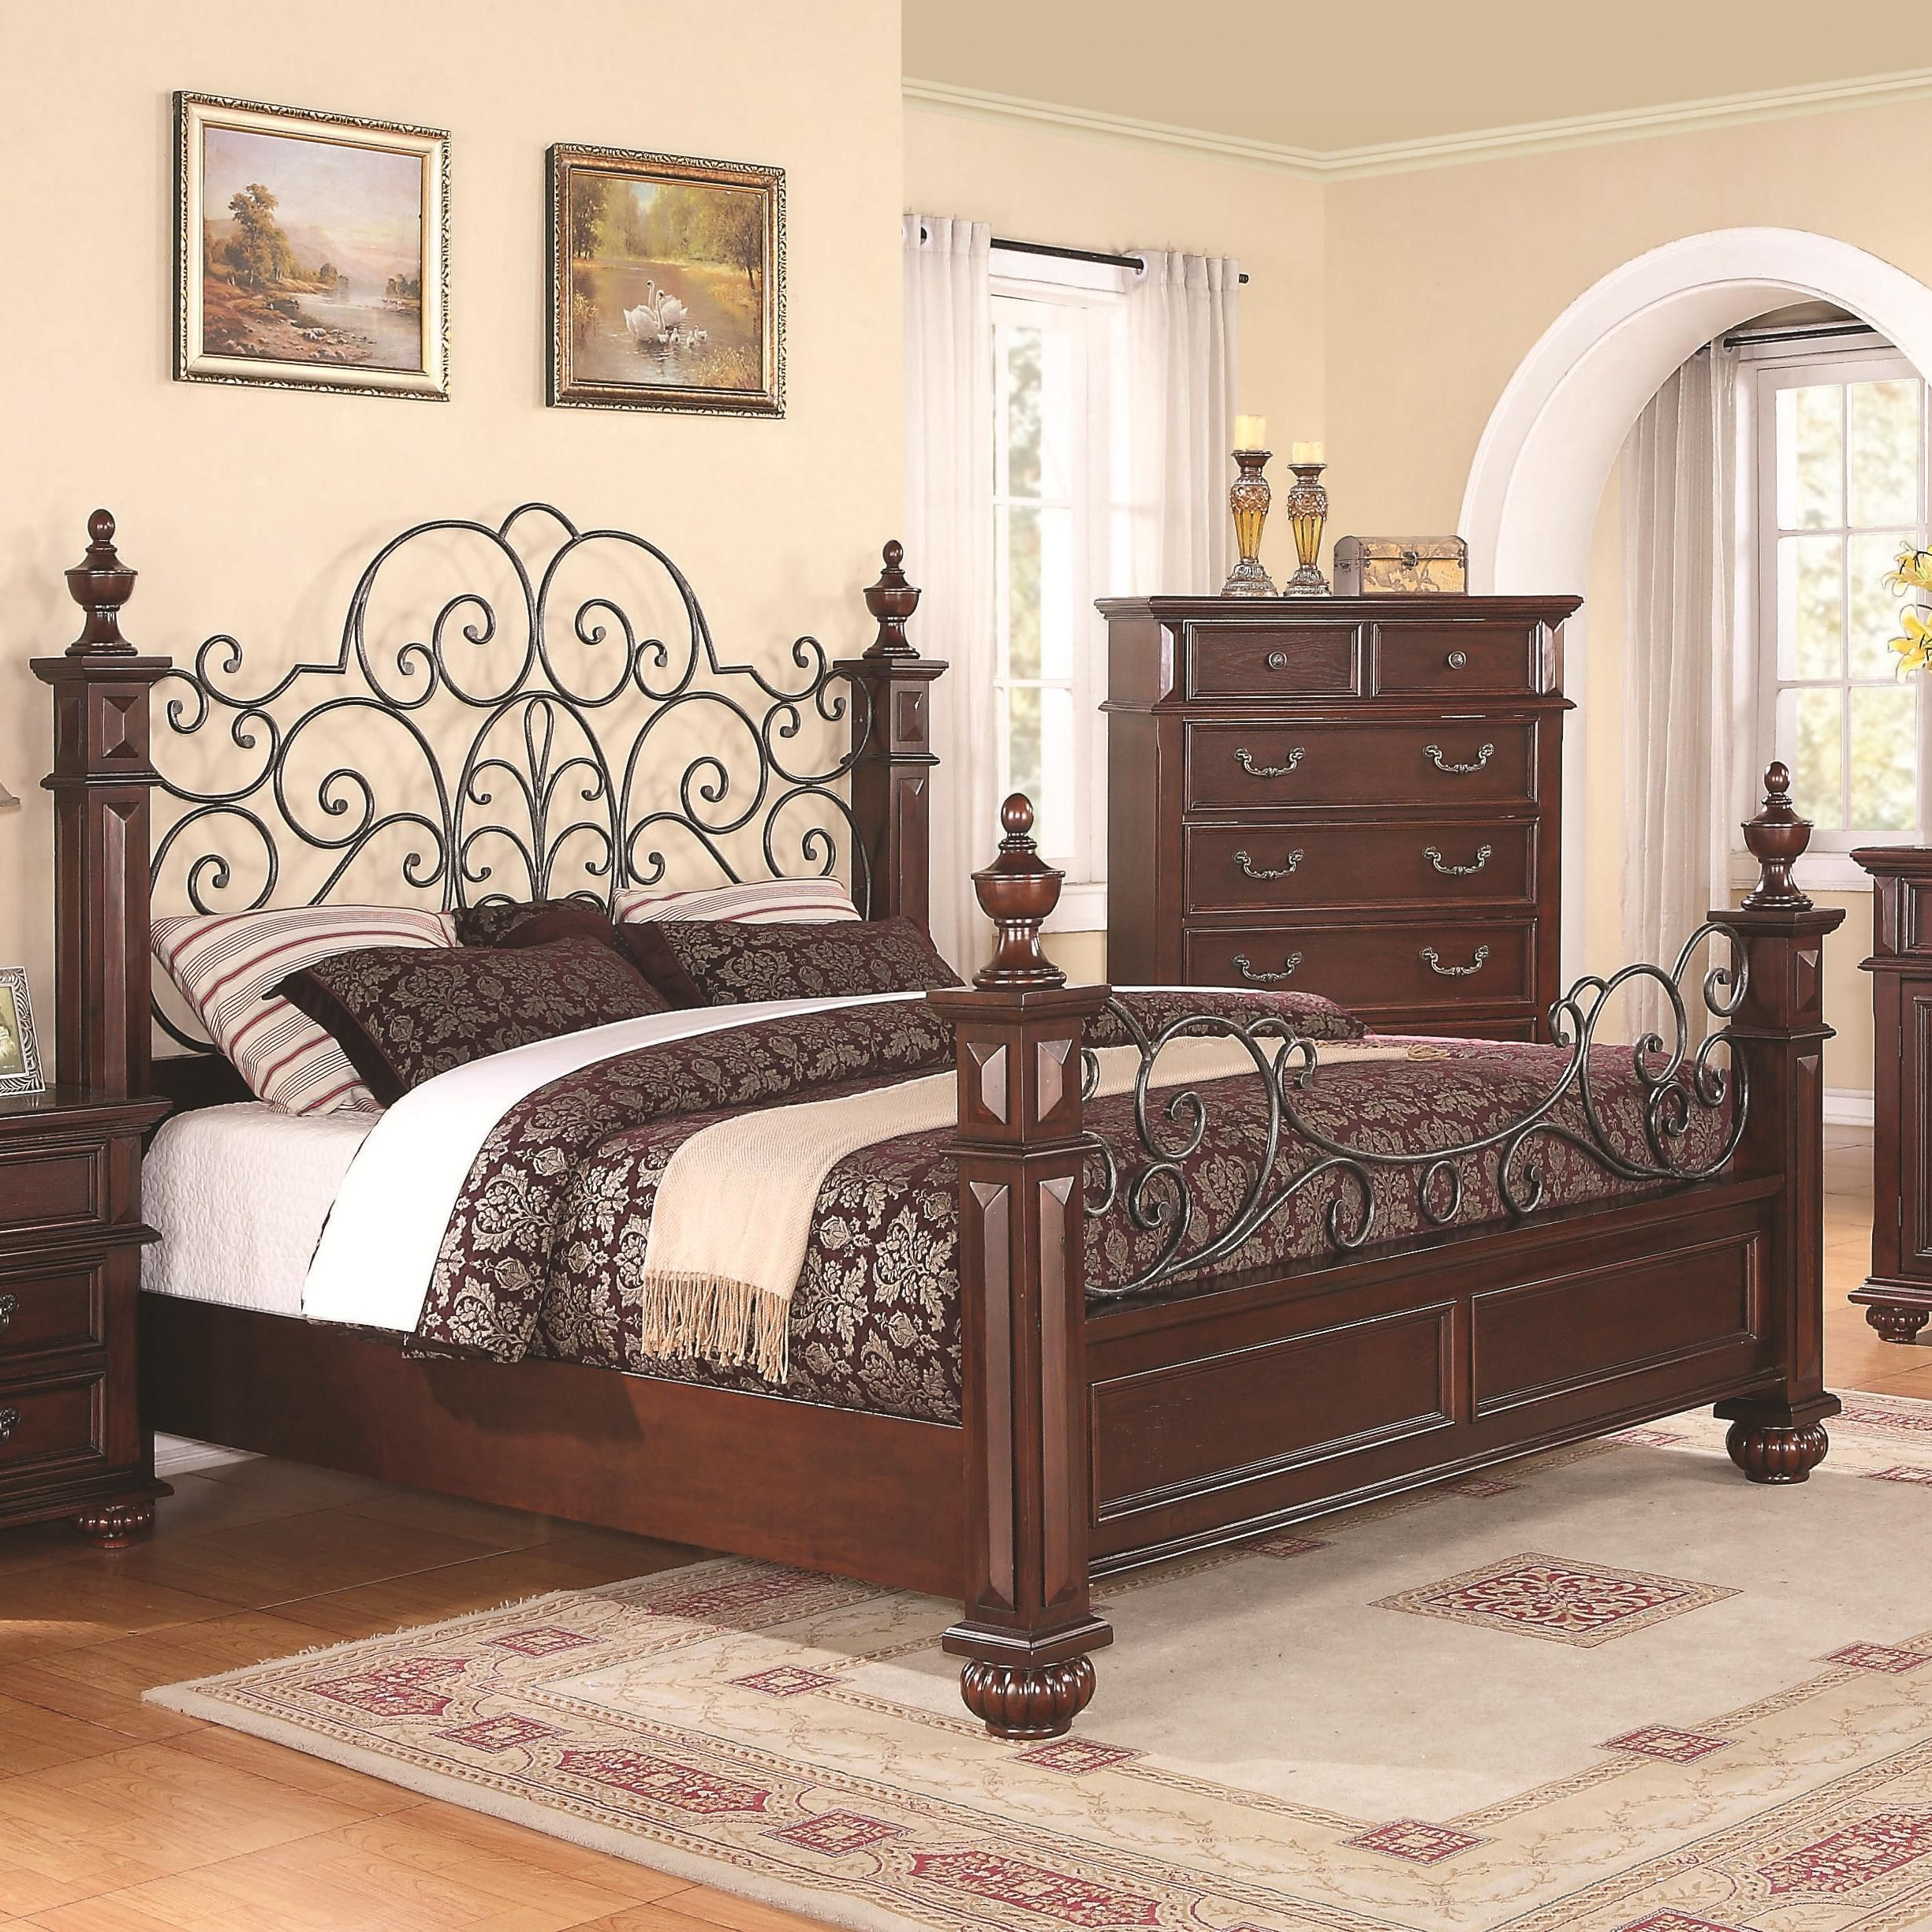 Low Wood/Wrought Iron King Size Bed | Dream Home | Pinterest ...